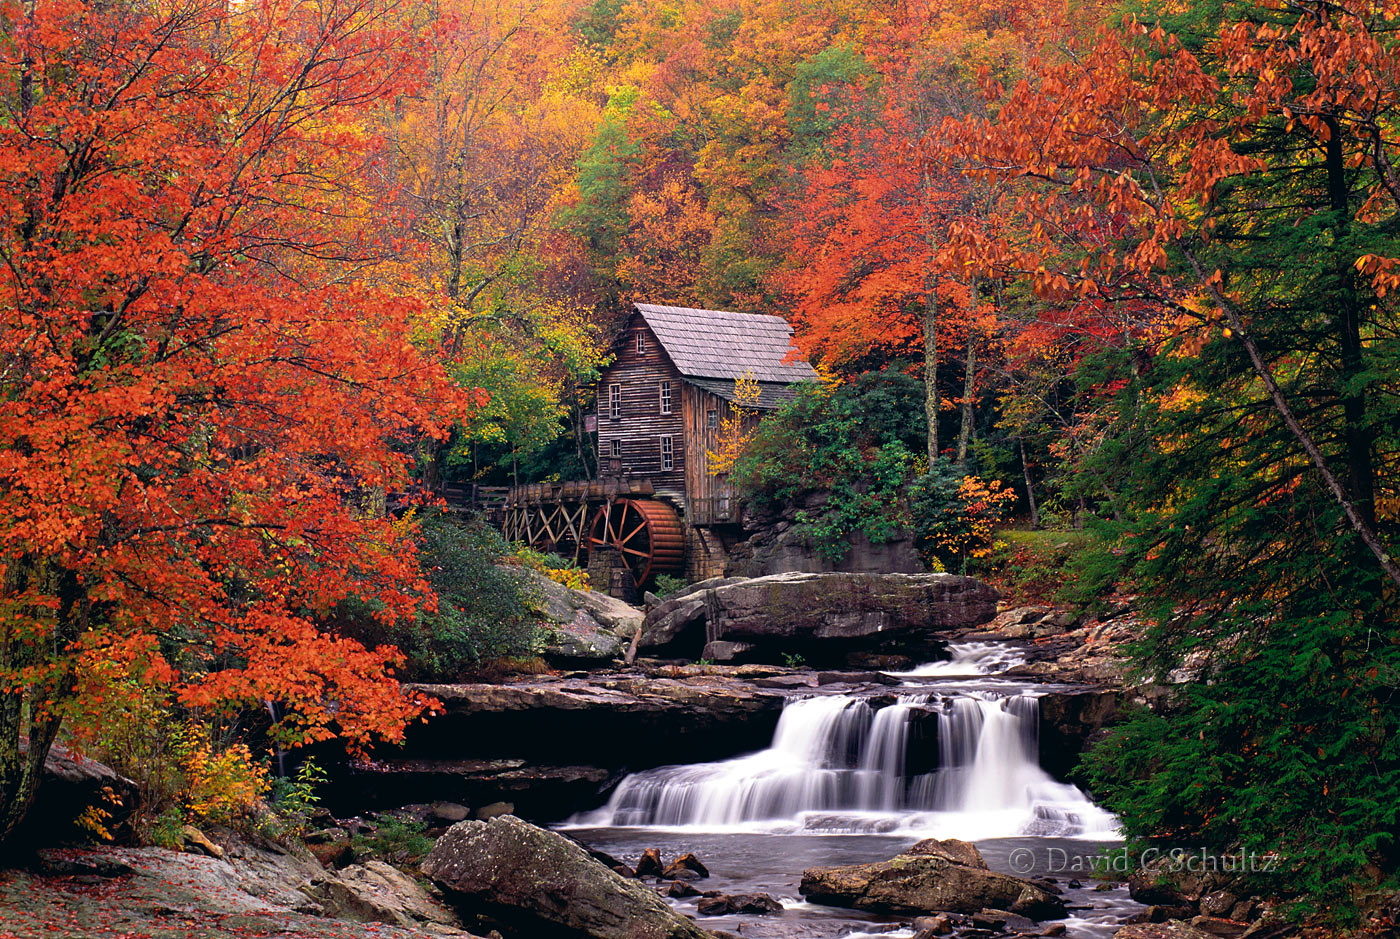 Glade Creek Grist Mill - Image #129-97